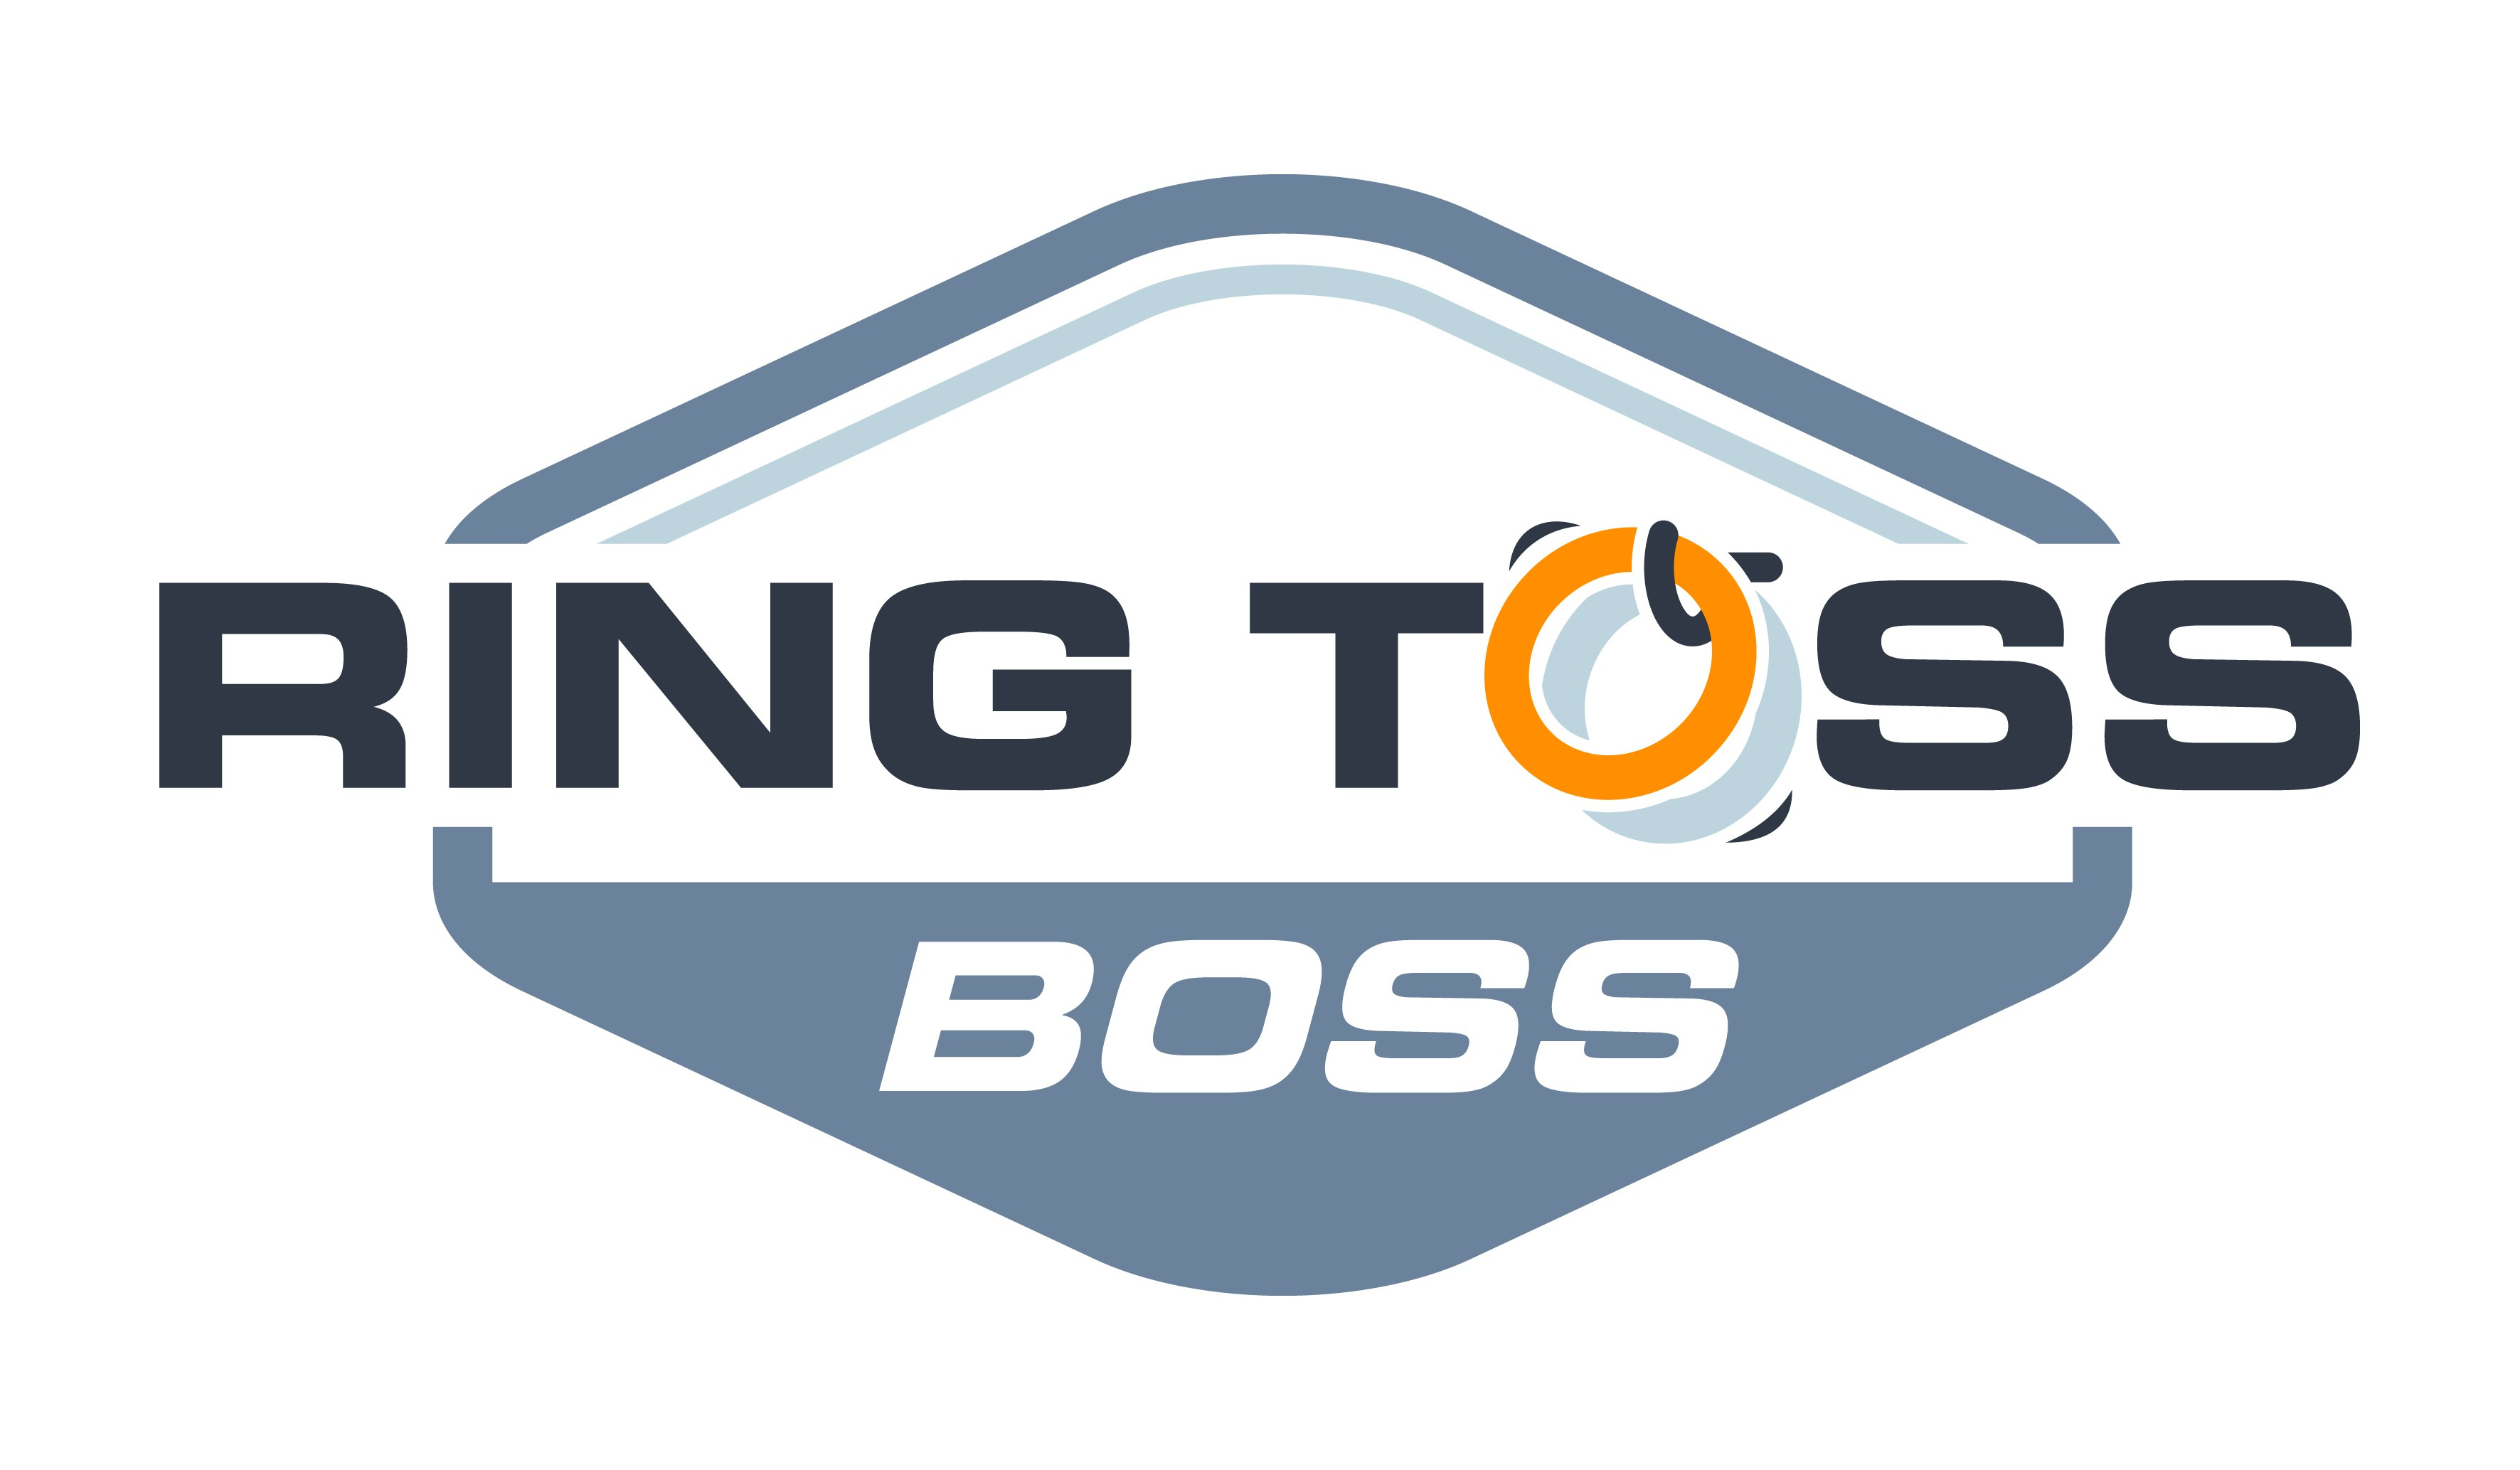 New name and logo for Hookey Toss game